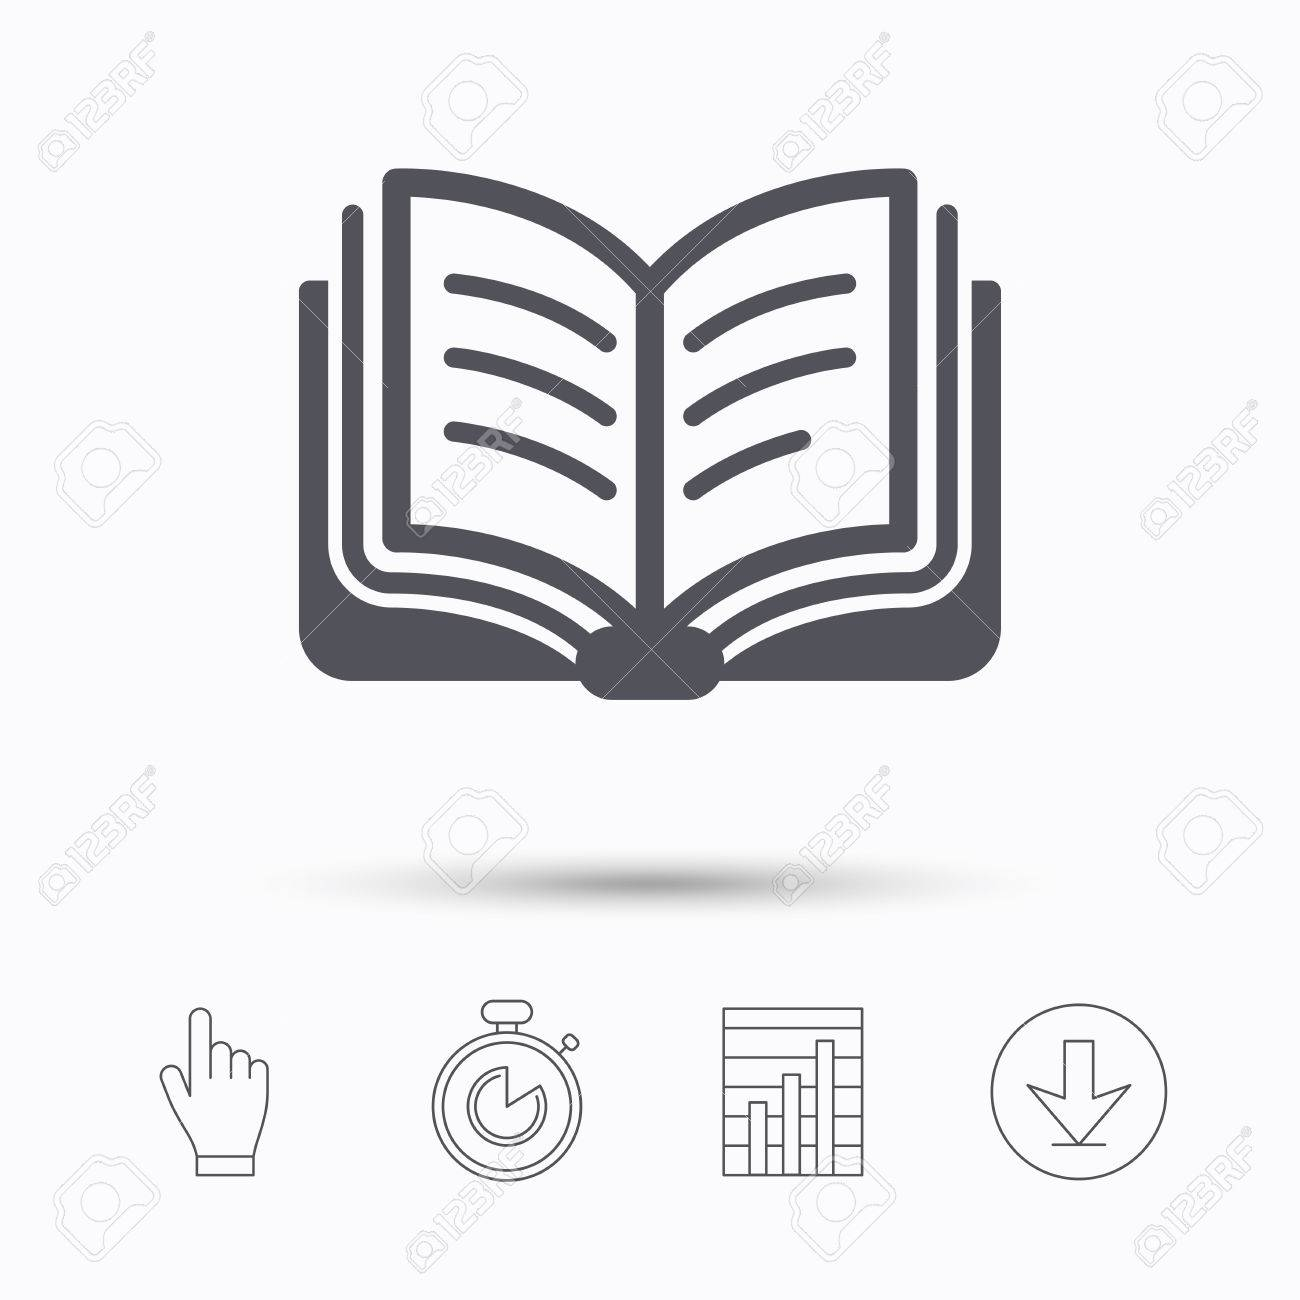 book icon study literature sign education textbook symbol study literature sign education textbook symbol stopwatch timer hand click